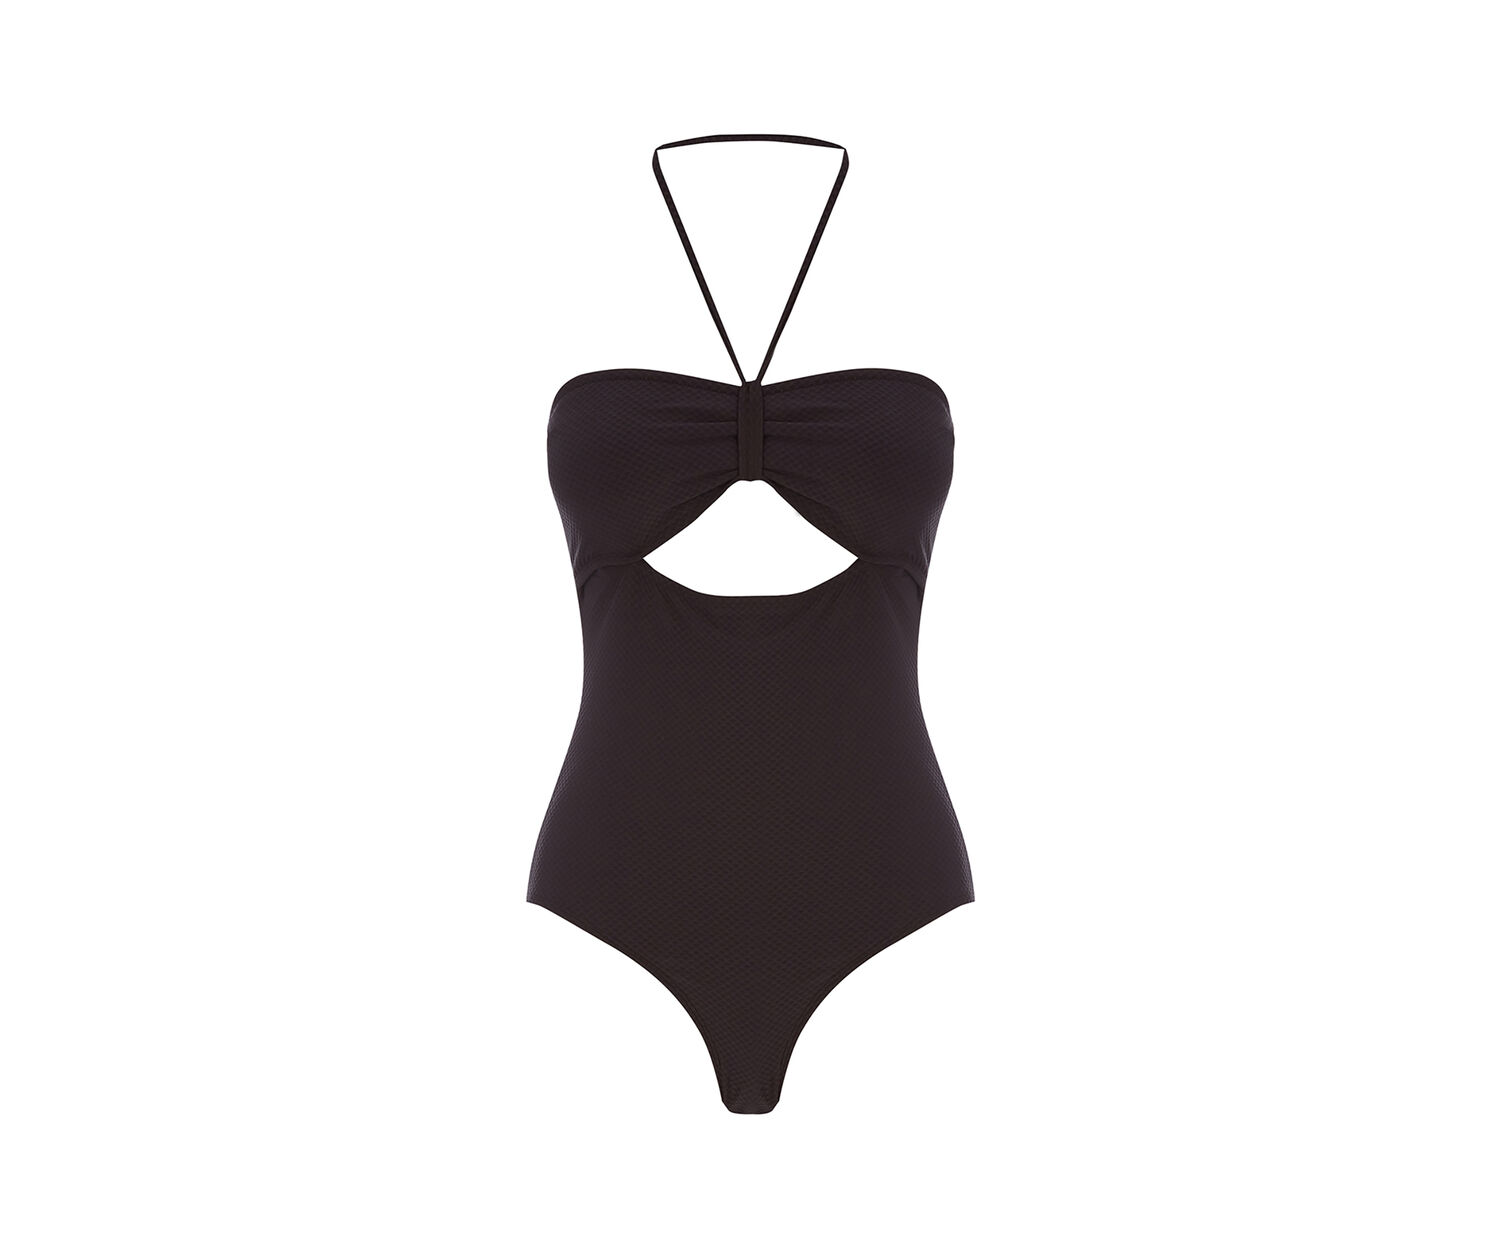 Oasis, PLAIN TEXTURED SWIMSUIT Black 1